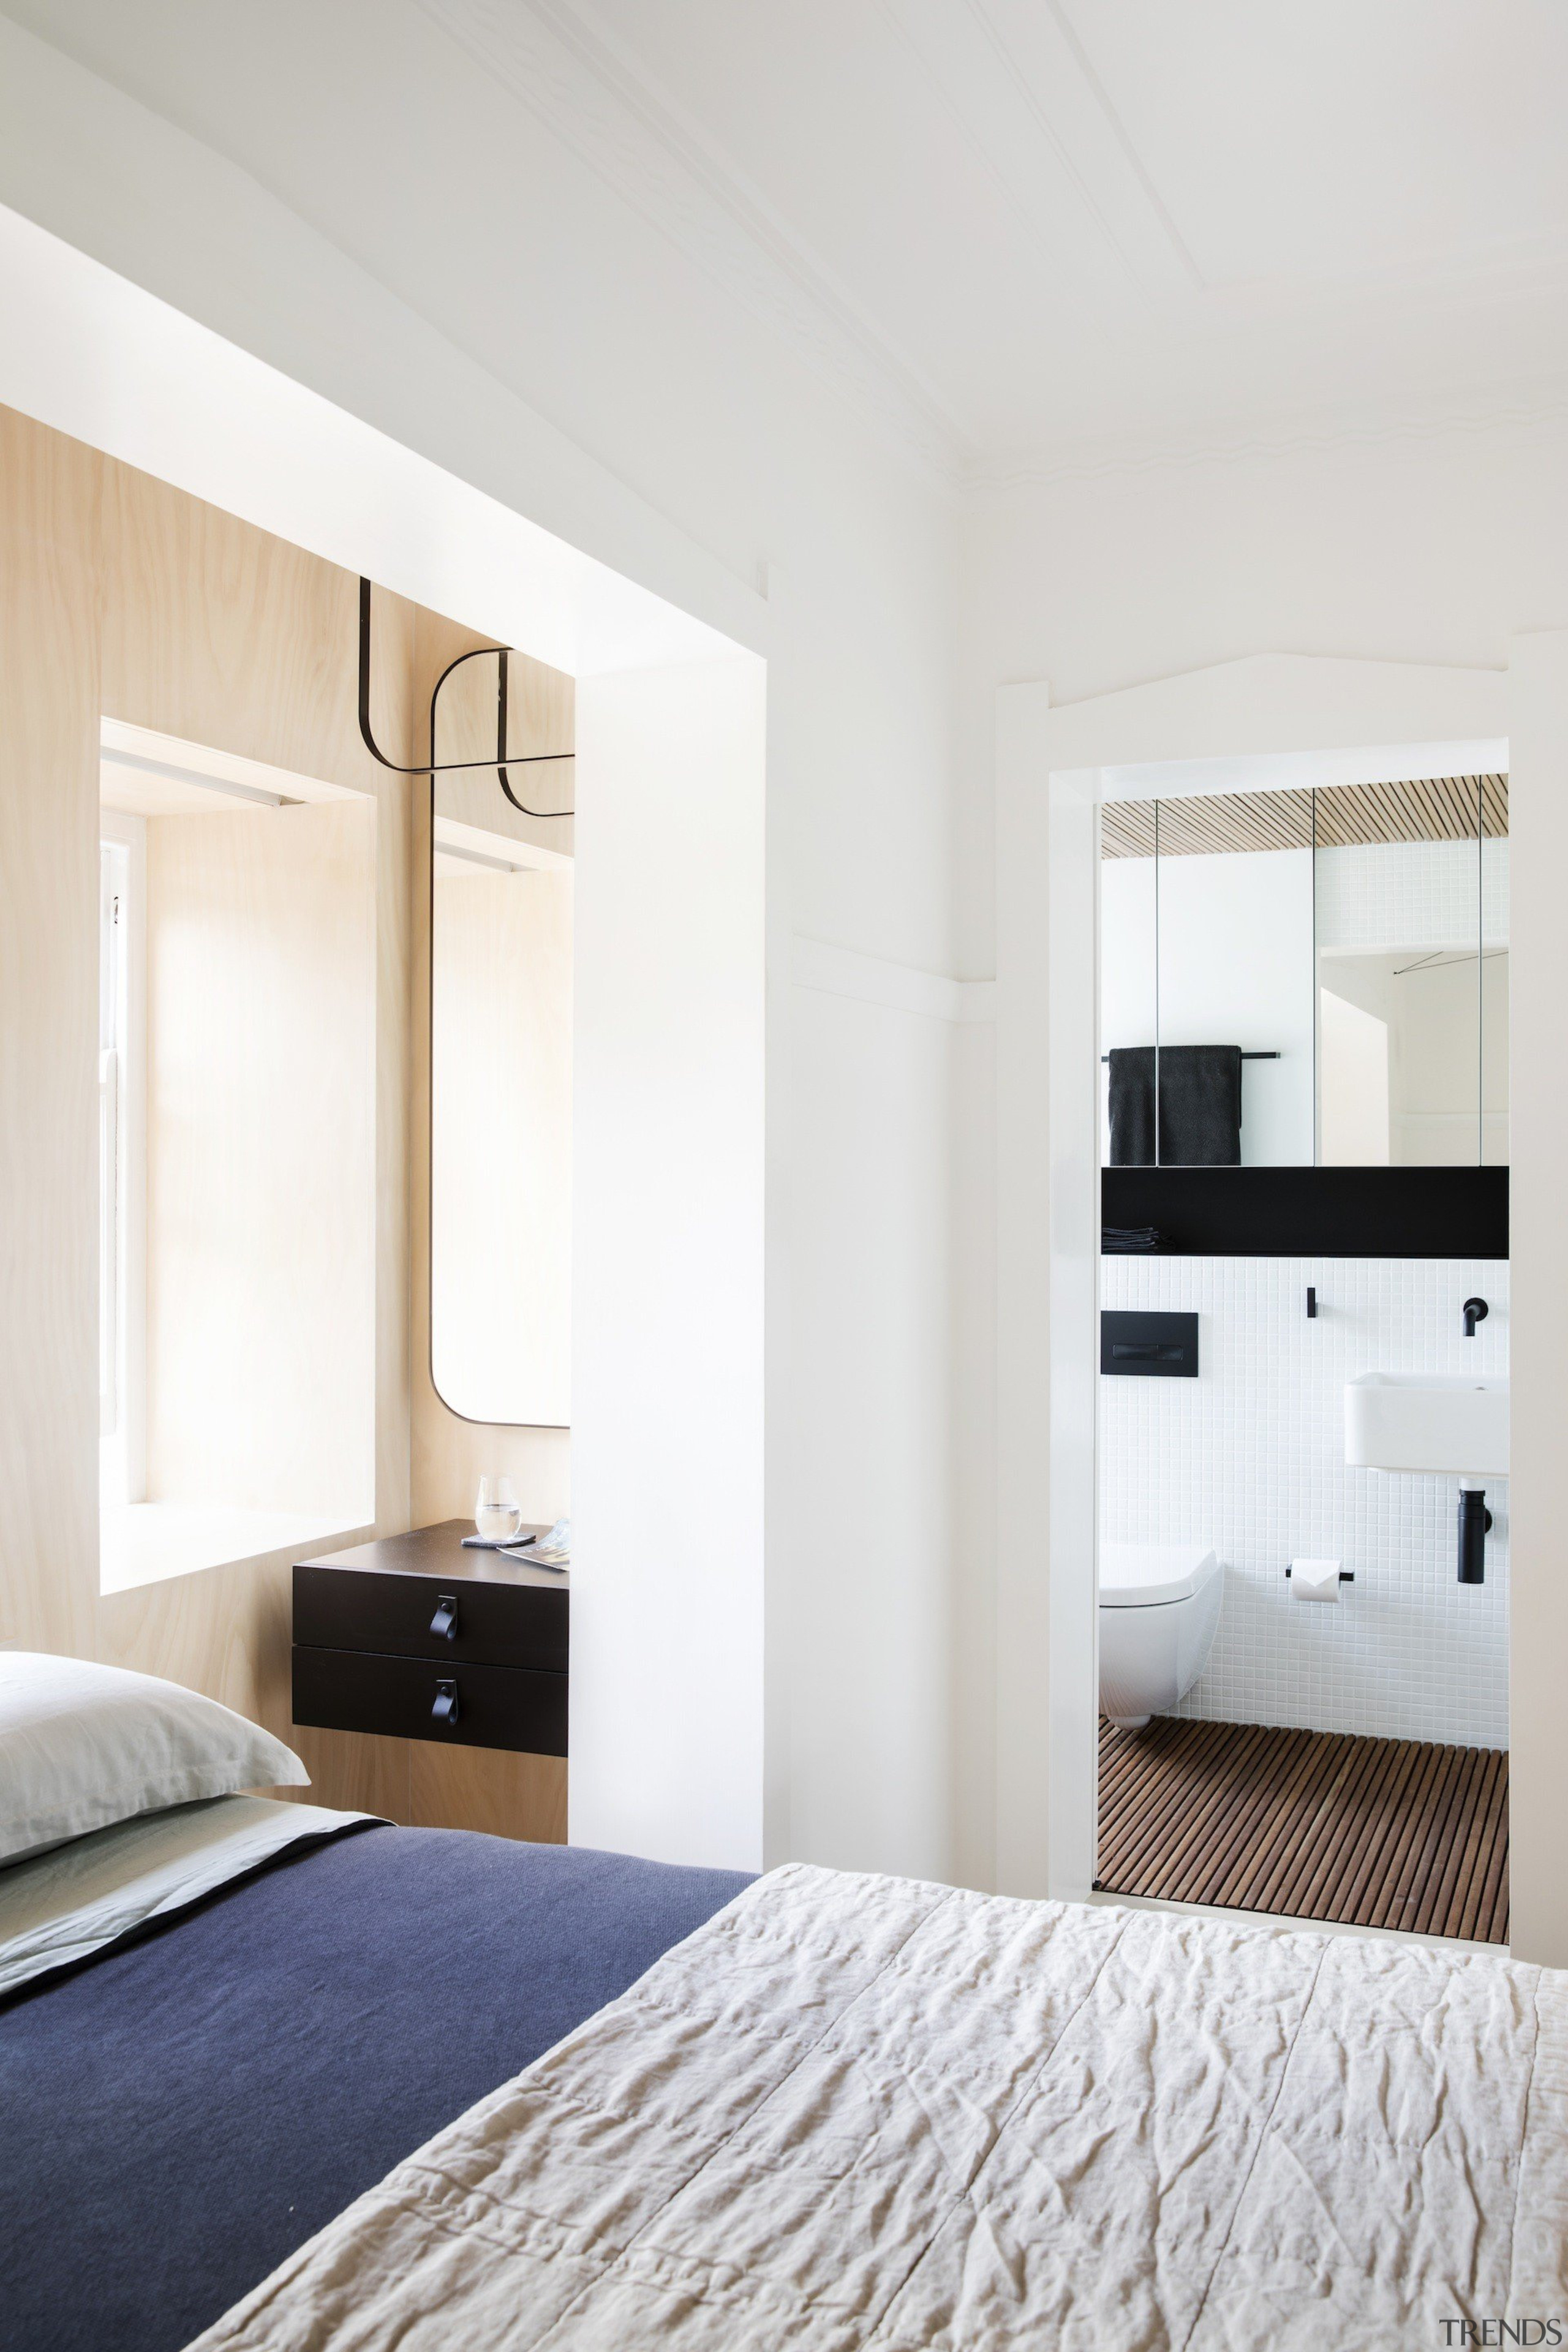 See more from Architect Prineas architecture, bed frame, bedroom, ceiling, floor, flooring, home, interior design, room, suite, wall, window, white